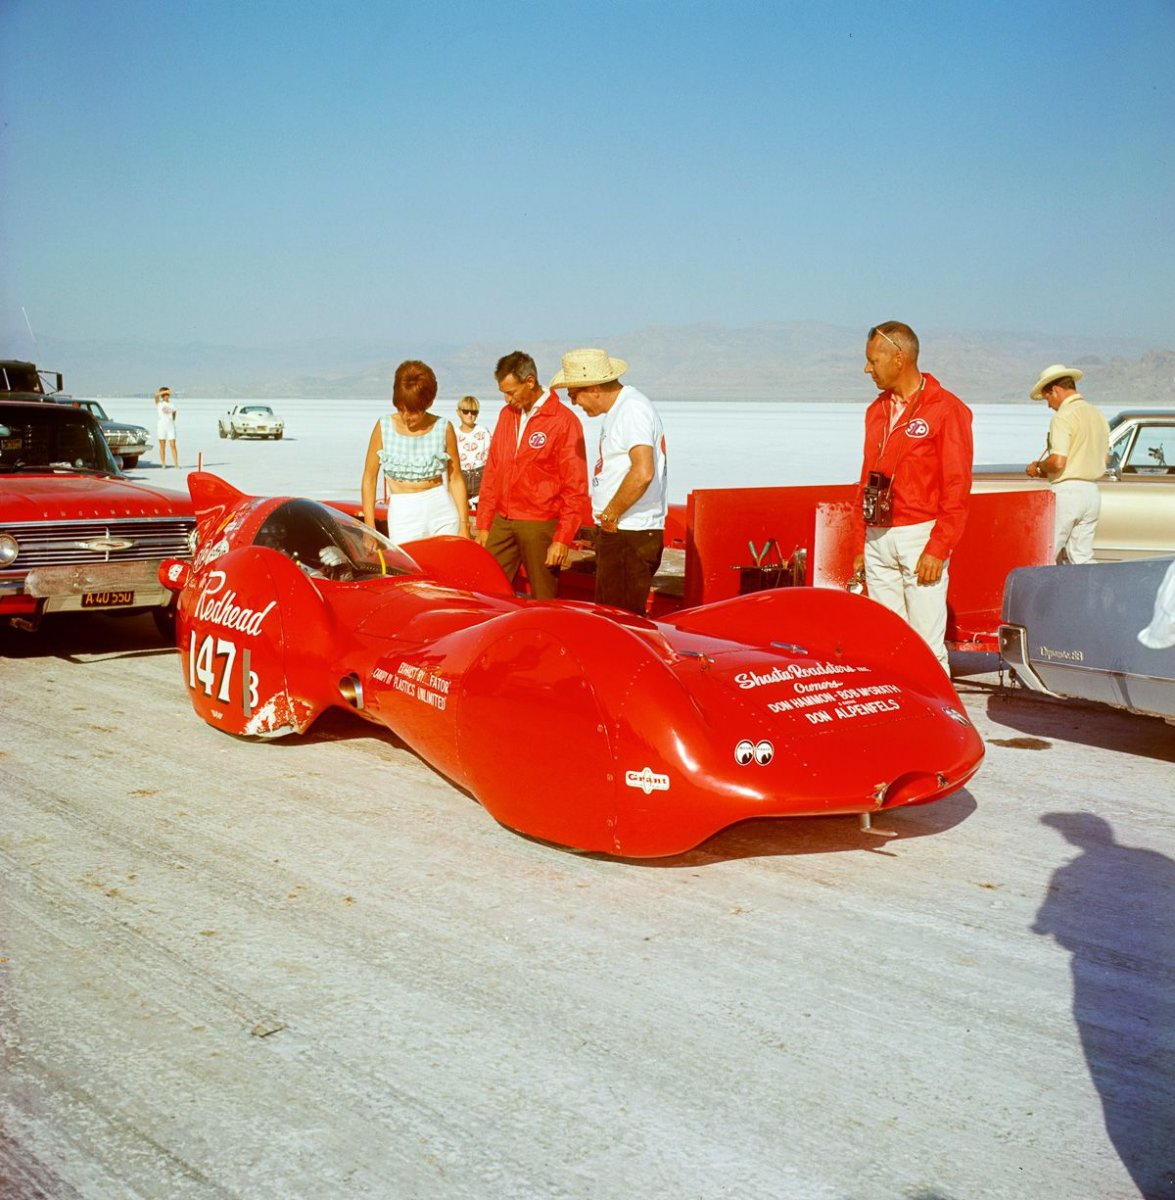 45 The Hammon-McGrath-Appenfels Redhead streamliner3.jpg